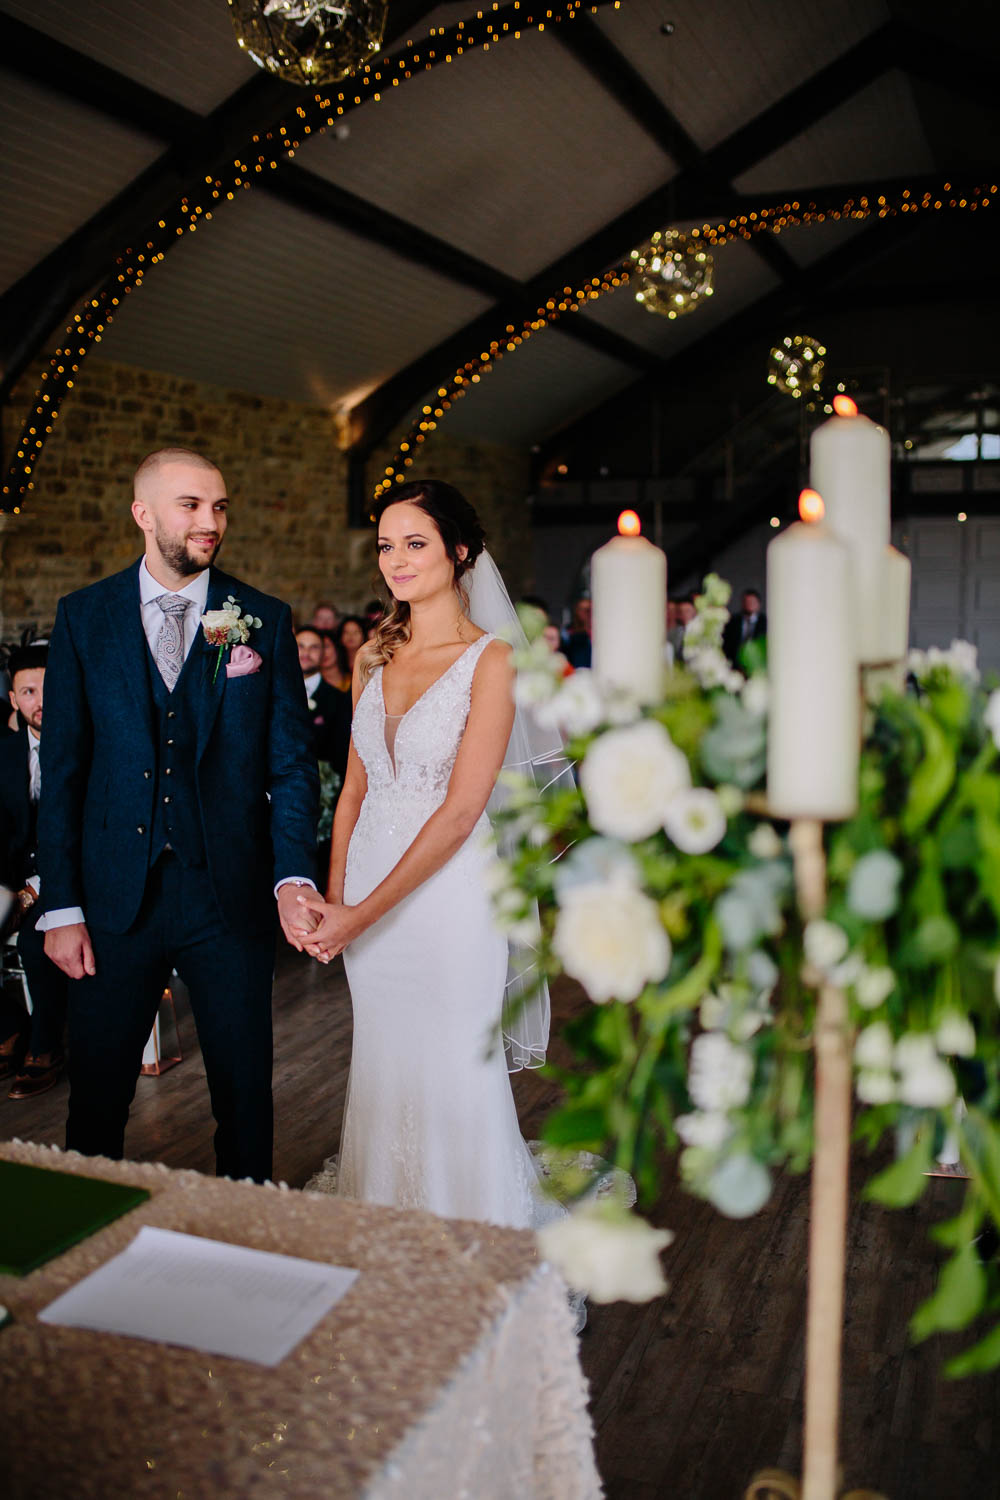 Bride Bridal Sleeveless V Neck Embellished Dress Gown Fitted Blue Tweed Groom Suit Veil Yorkshire Wedding Barn Anna Rose Photography